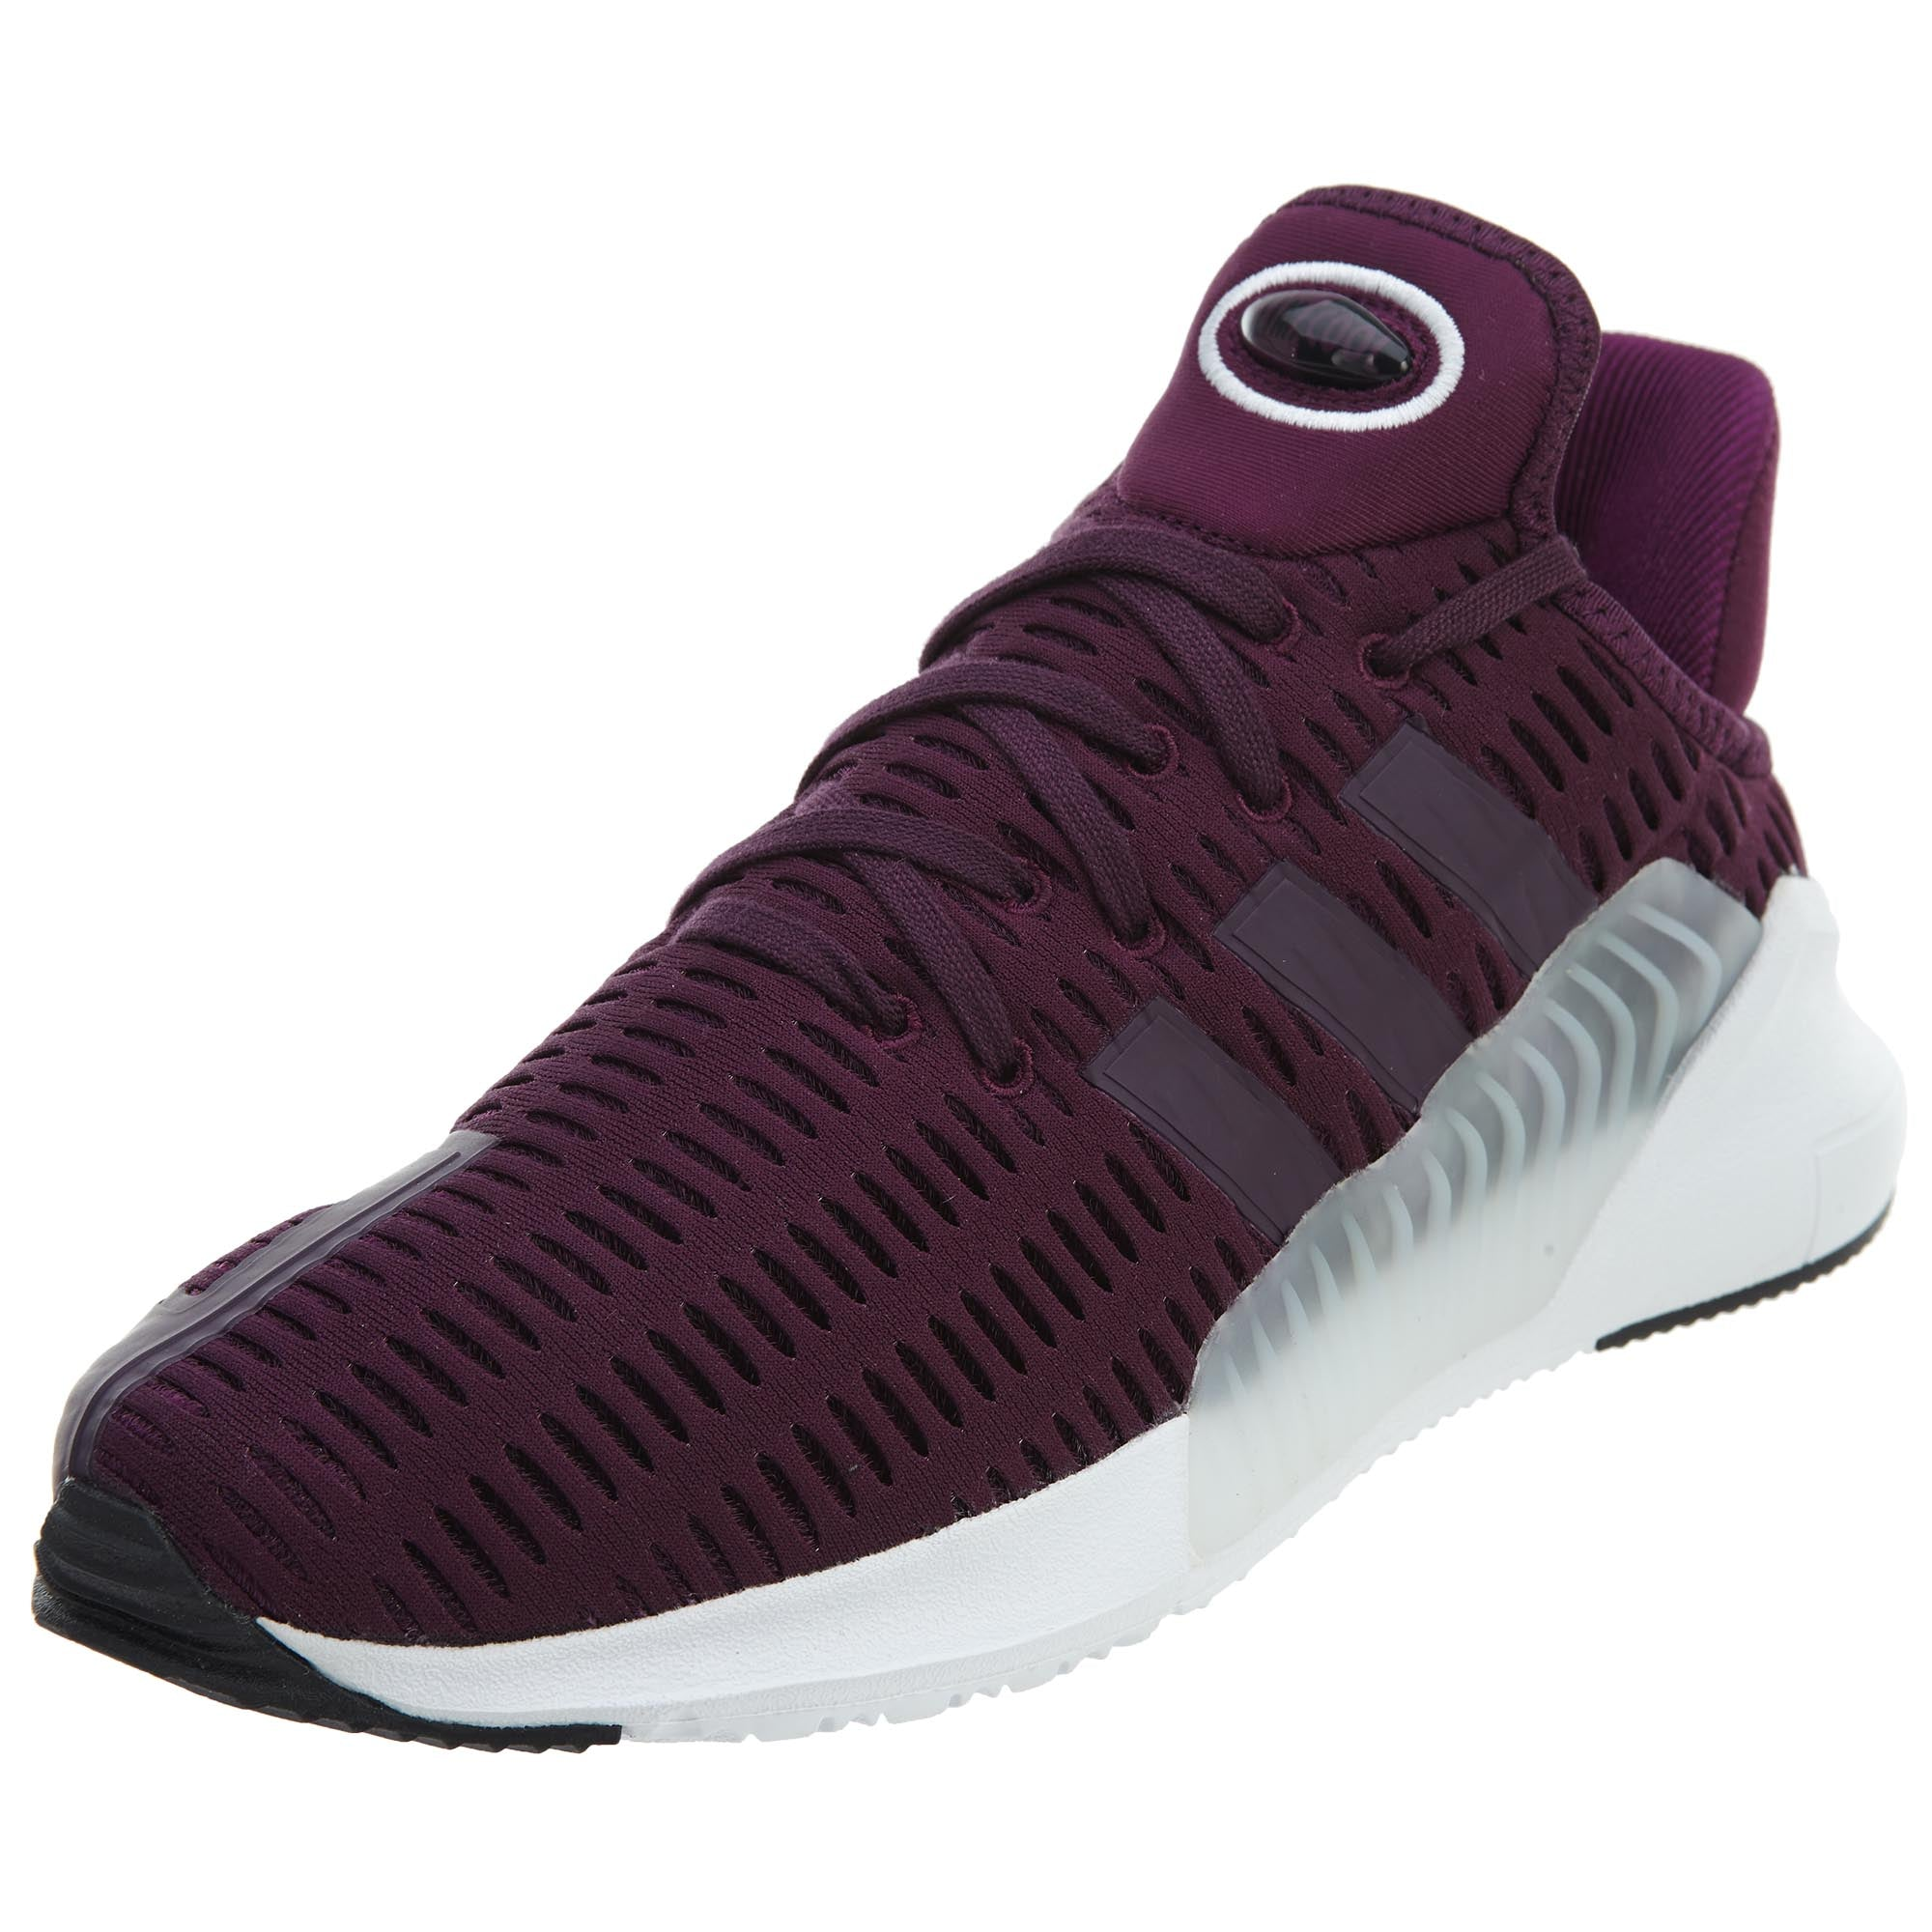 sale retailer a57a8 c2fea ... Adidas Climacool 02 17 Womens Style By9295 – Sneaker Experts ...